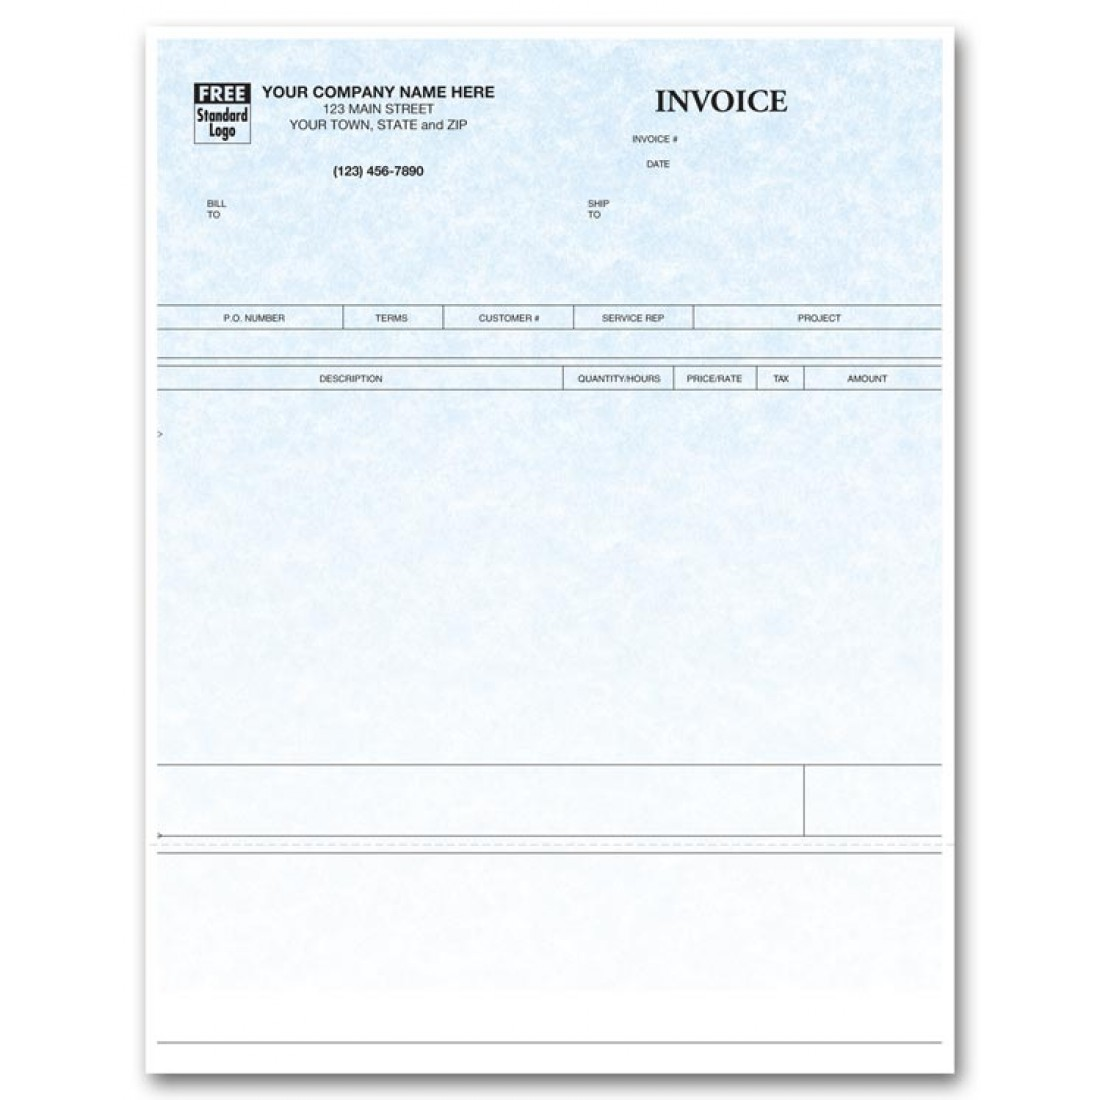 Laser Time & Materials Invoice - Parchment